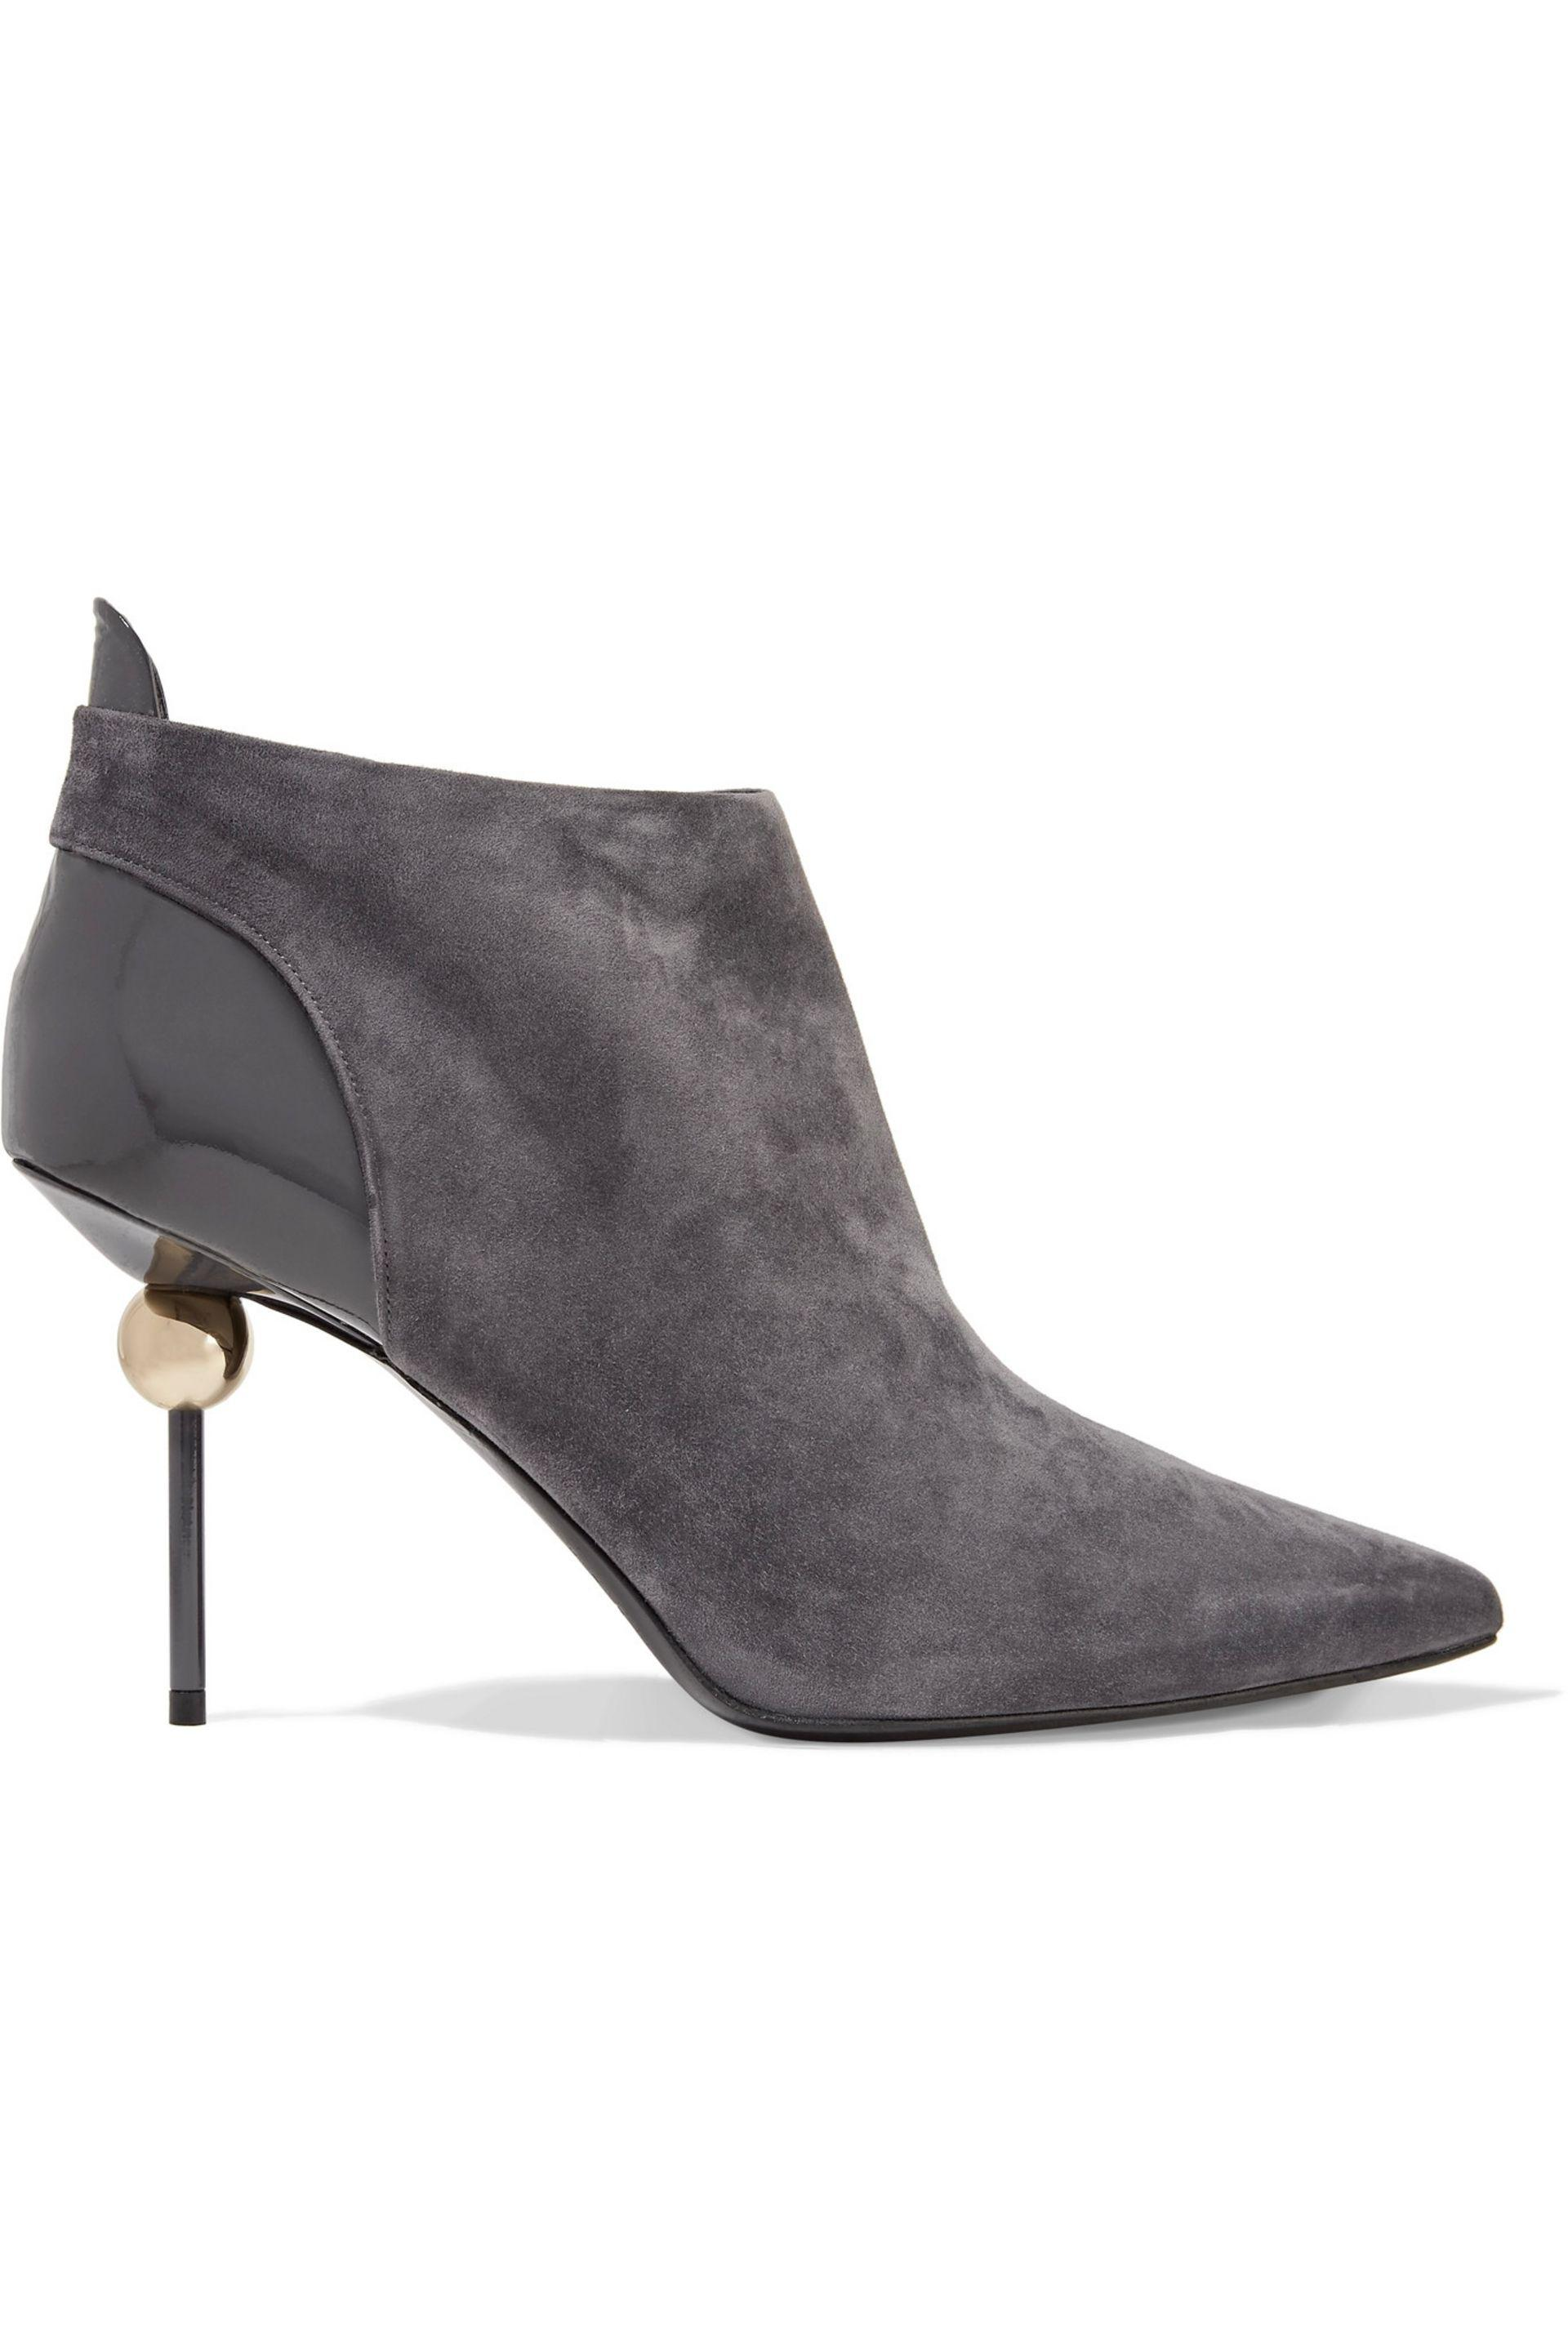 Roger Vivier Embellished suede ankle boots IcWryUCZS